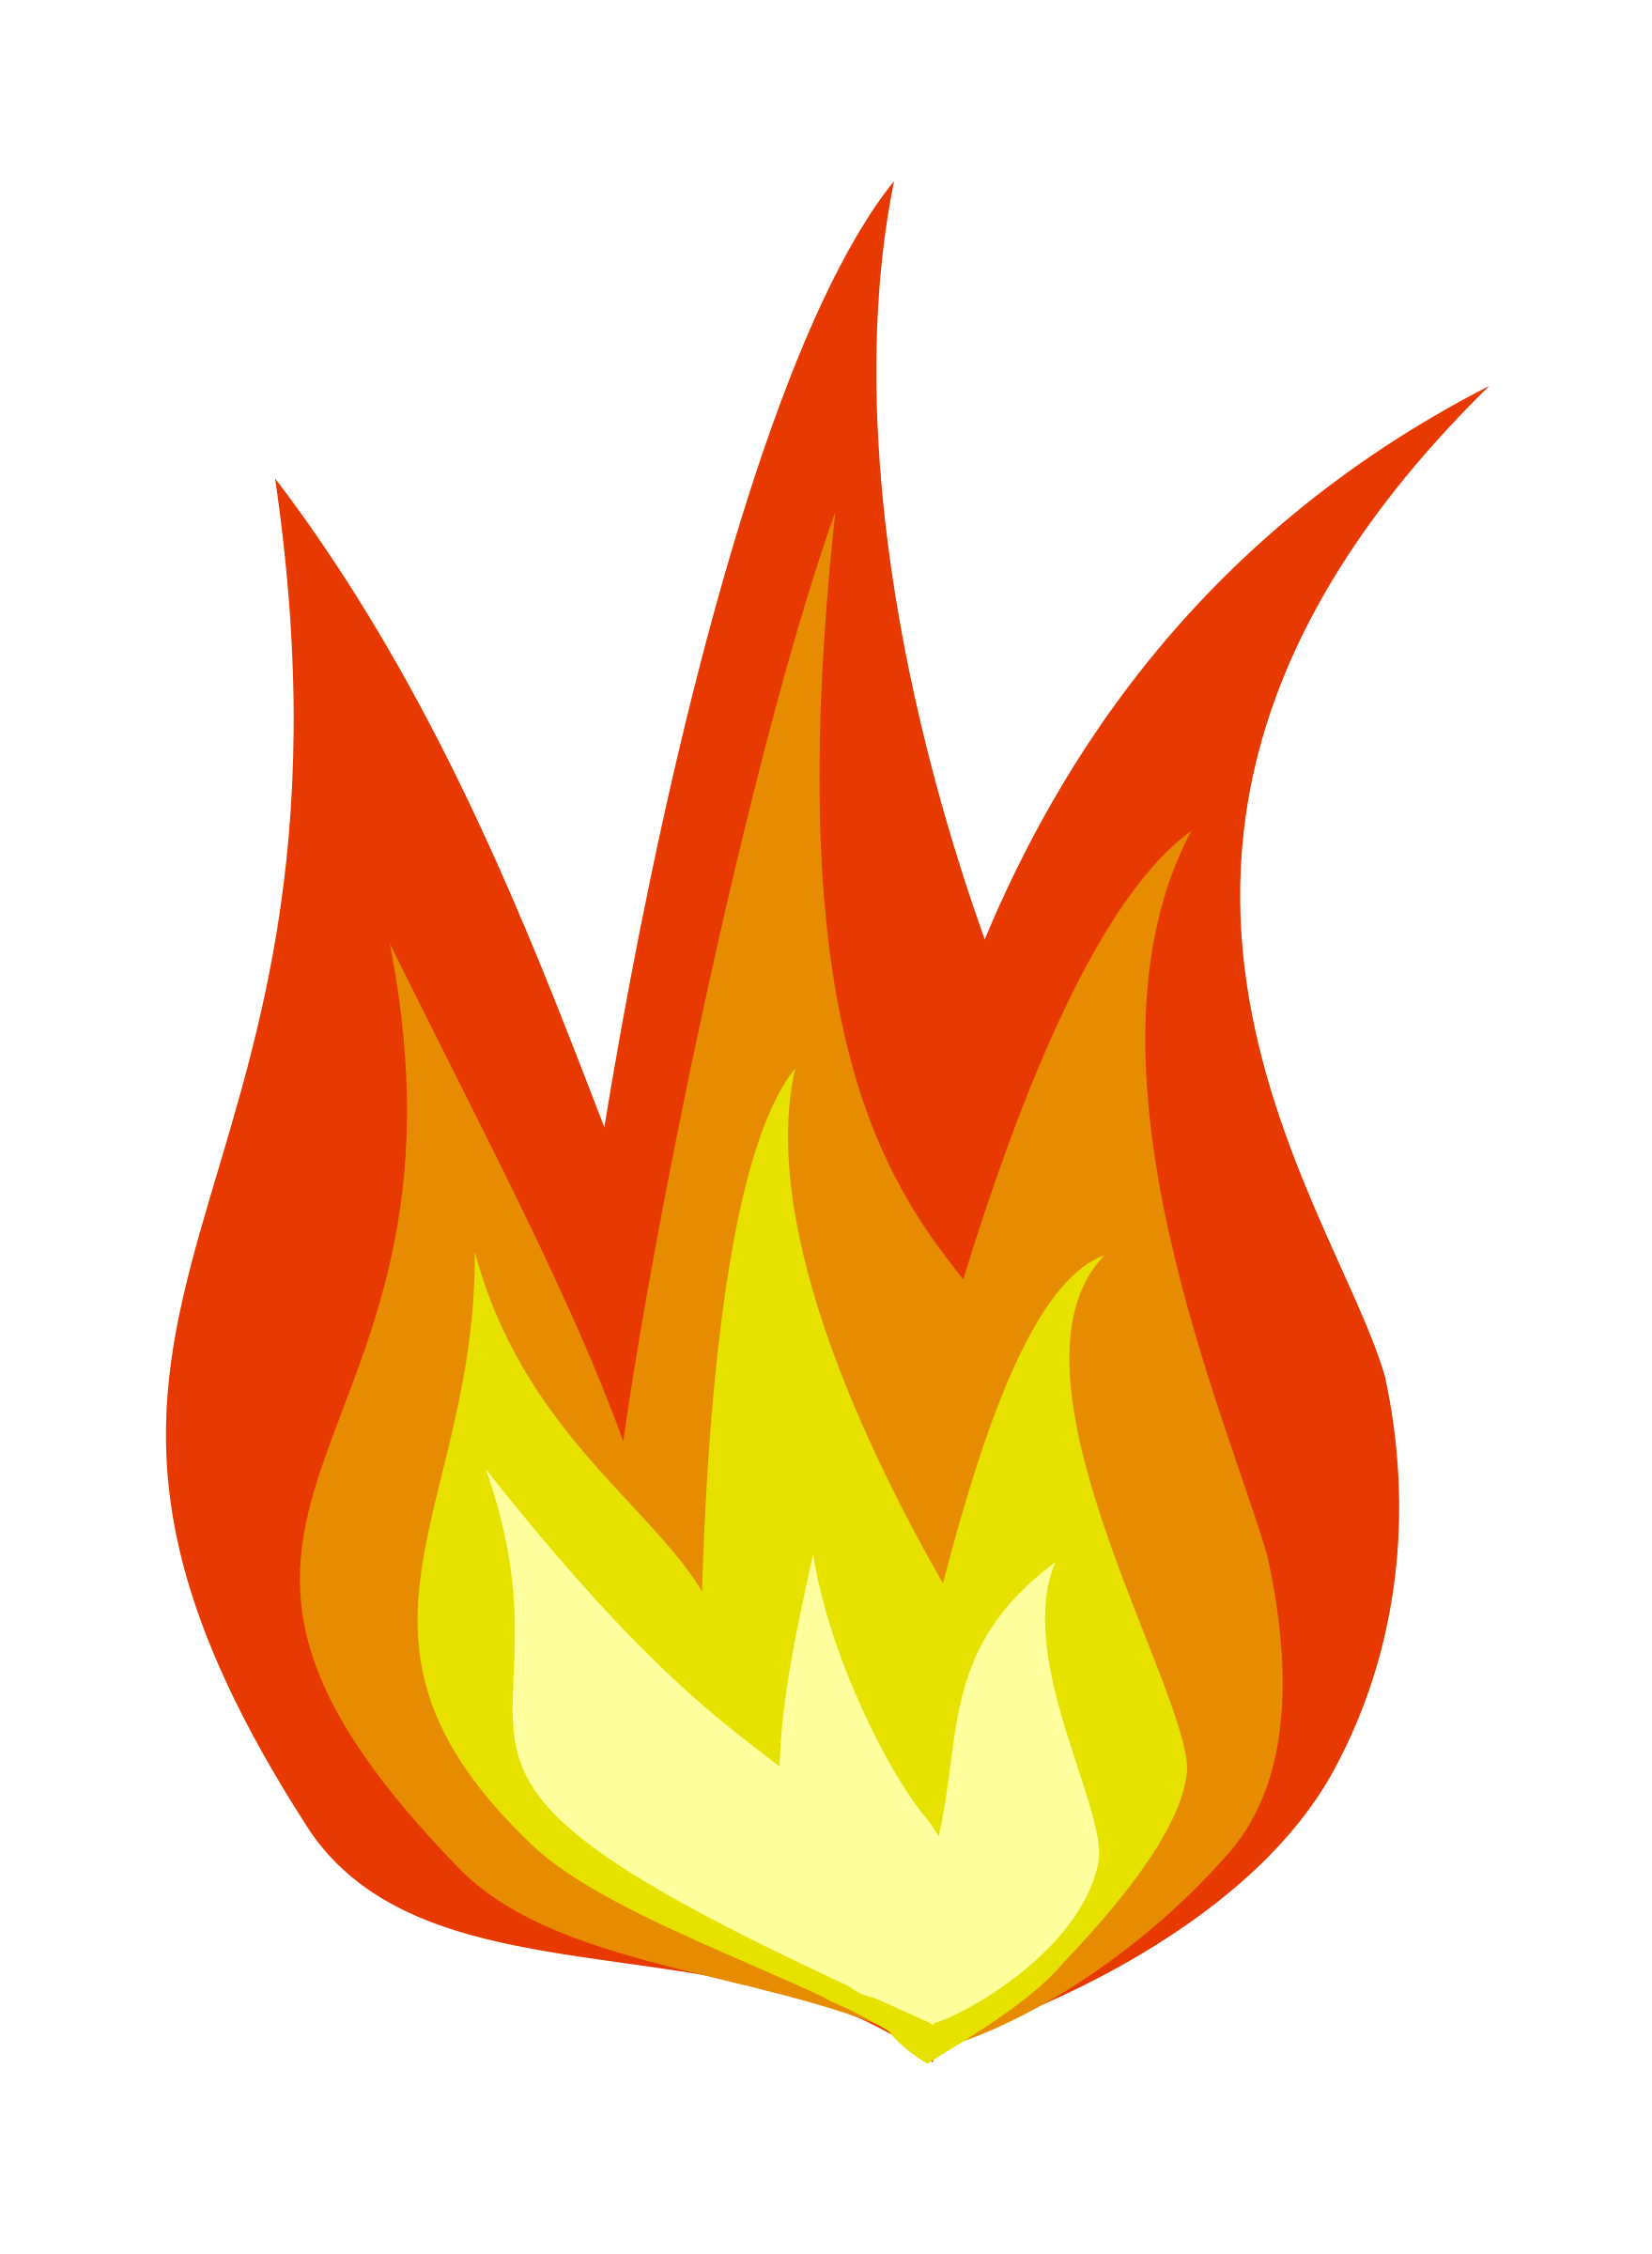 Clip art free download. Clipart shapes fire